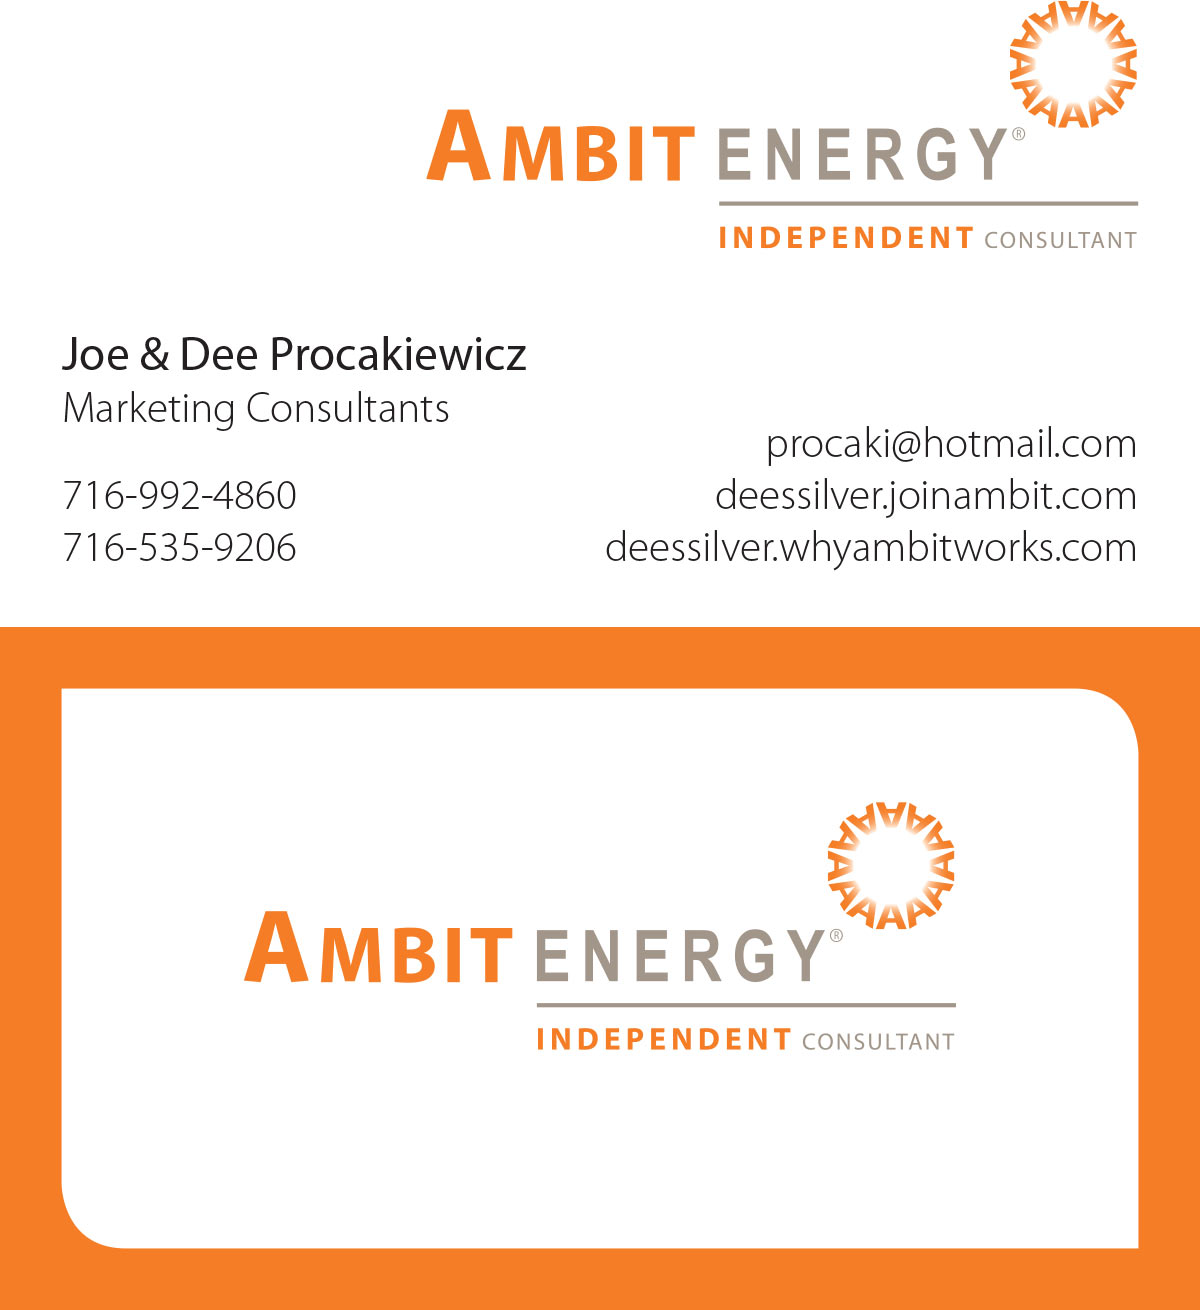 Ambit Energy Business Card Template